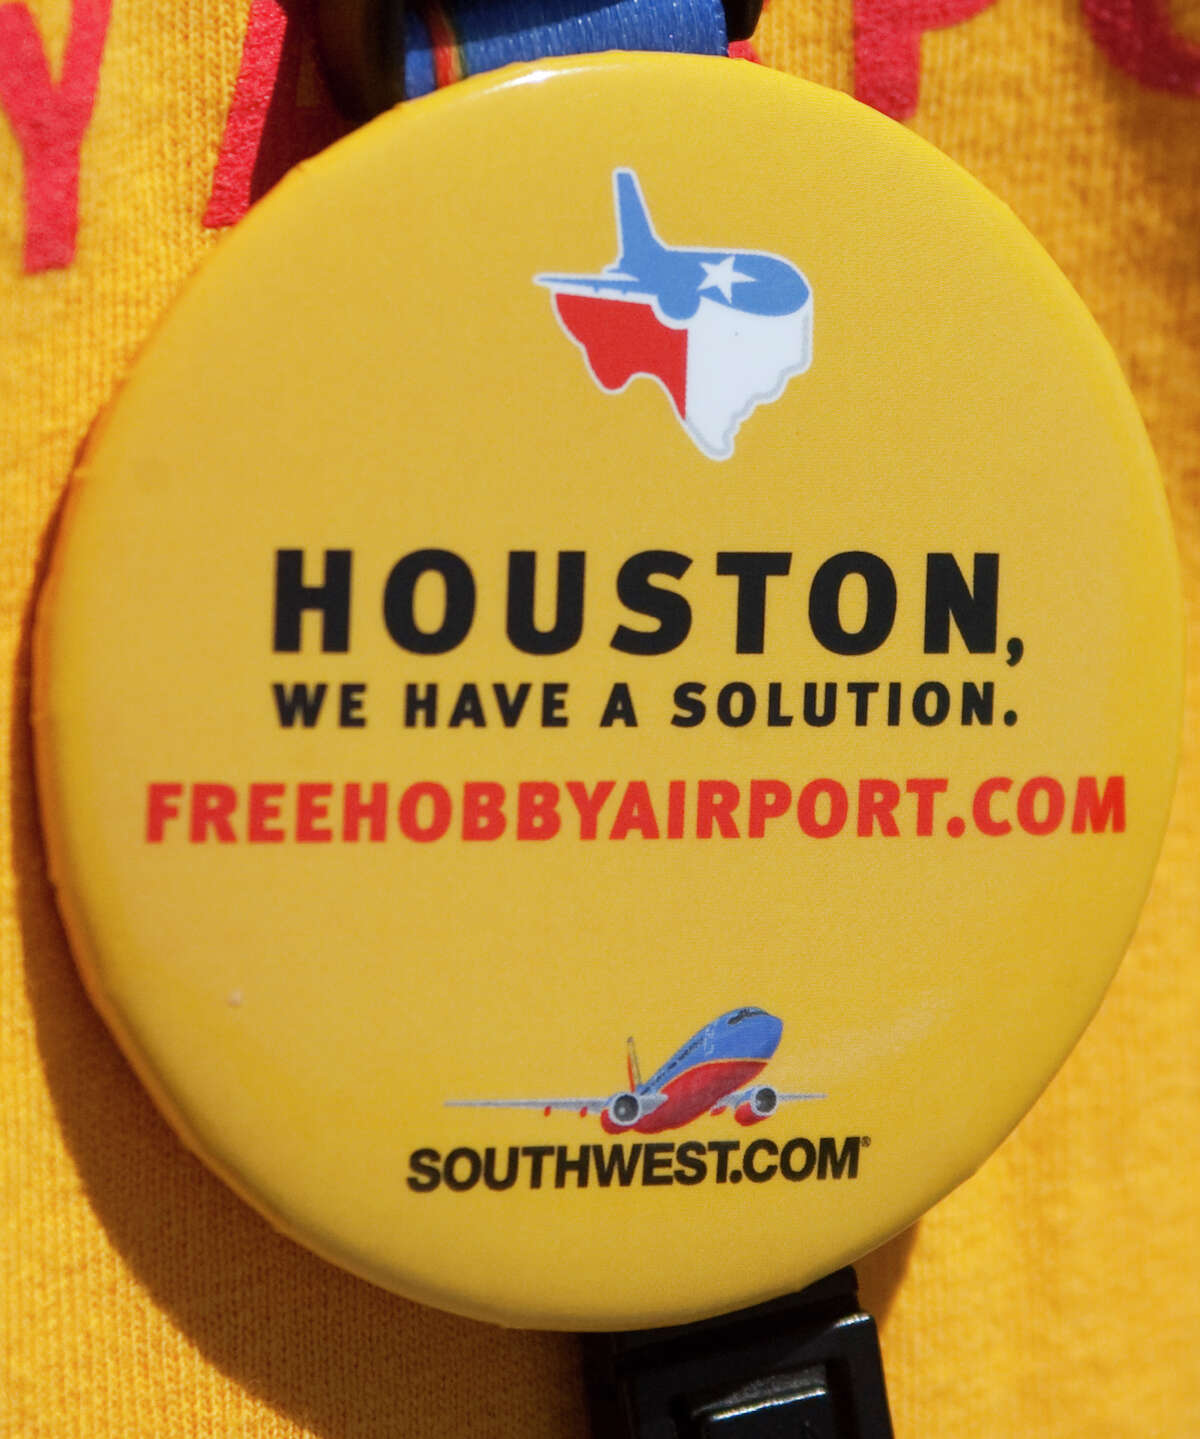 Southwest Airlines employees wore shirts and buttons in support of a new international flight station during the Hobby Fest at Hobby Airport on Saturday, April 21, 2012 in Houston, TX. ( J. Patric Schneider / For the Chronicle )